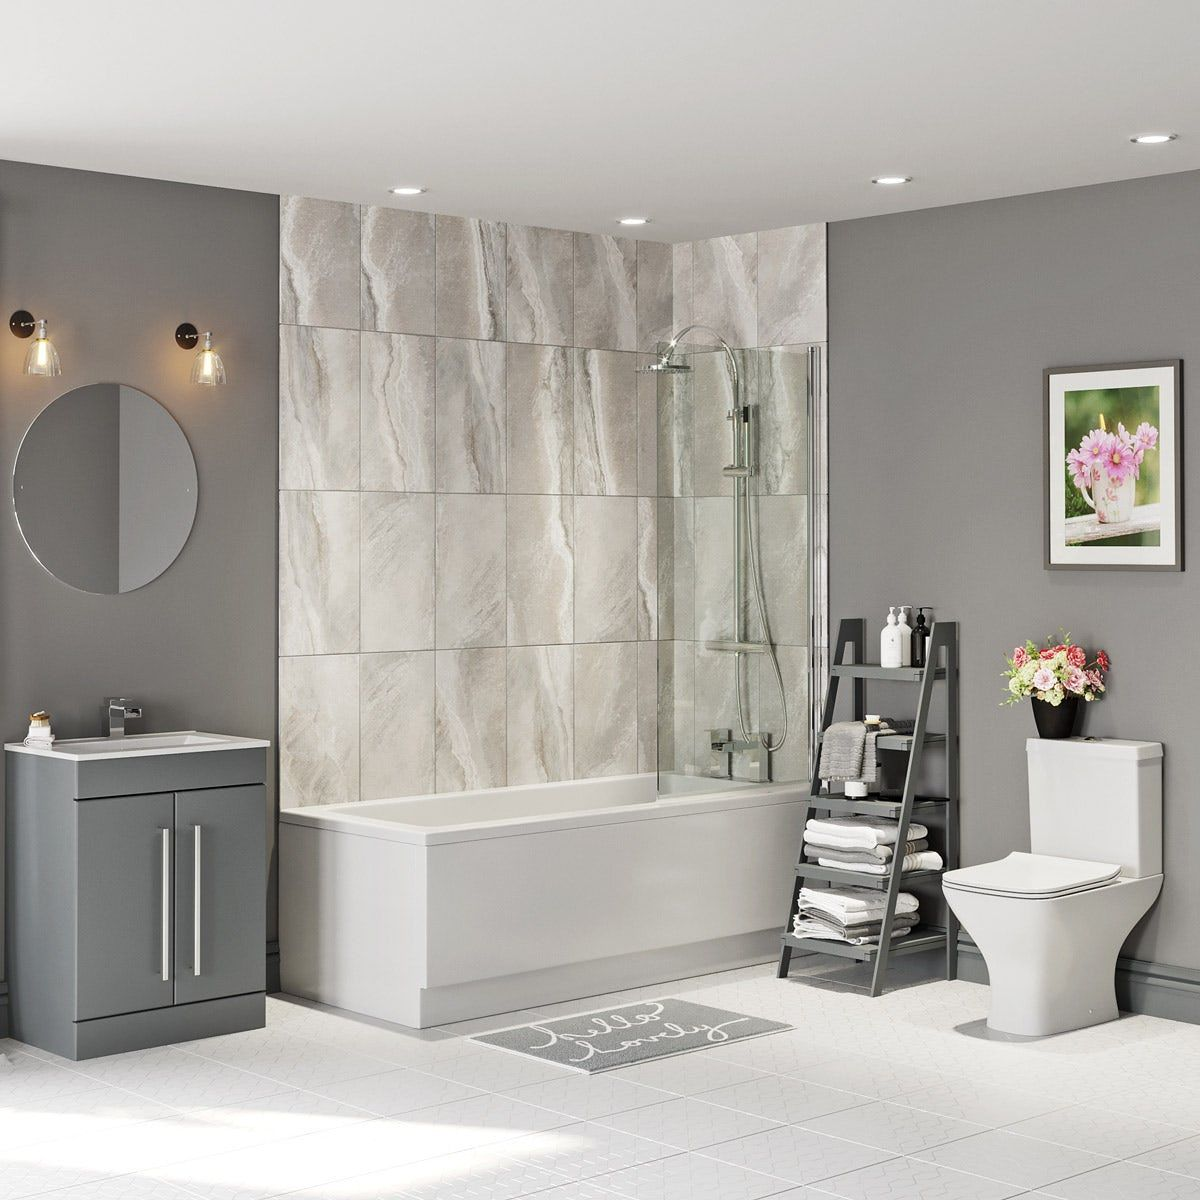 Orchard Derwent Square Straight Shower Bath Suite Shower Bath Shower Suites Contemporary Bathroom Designs